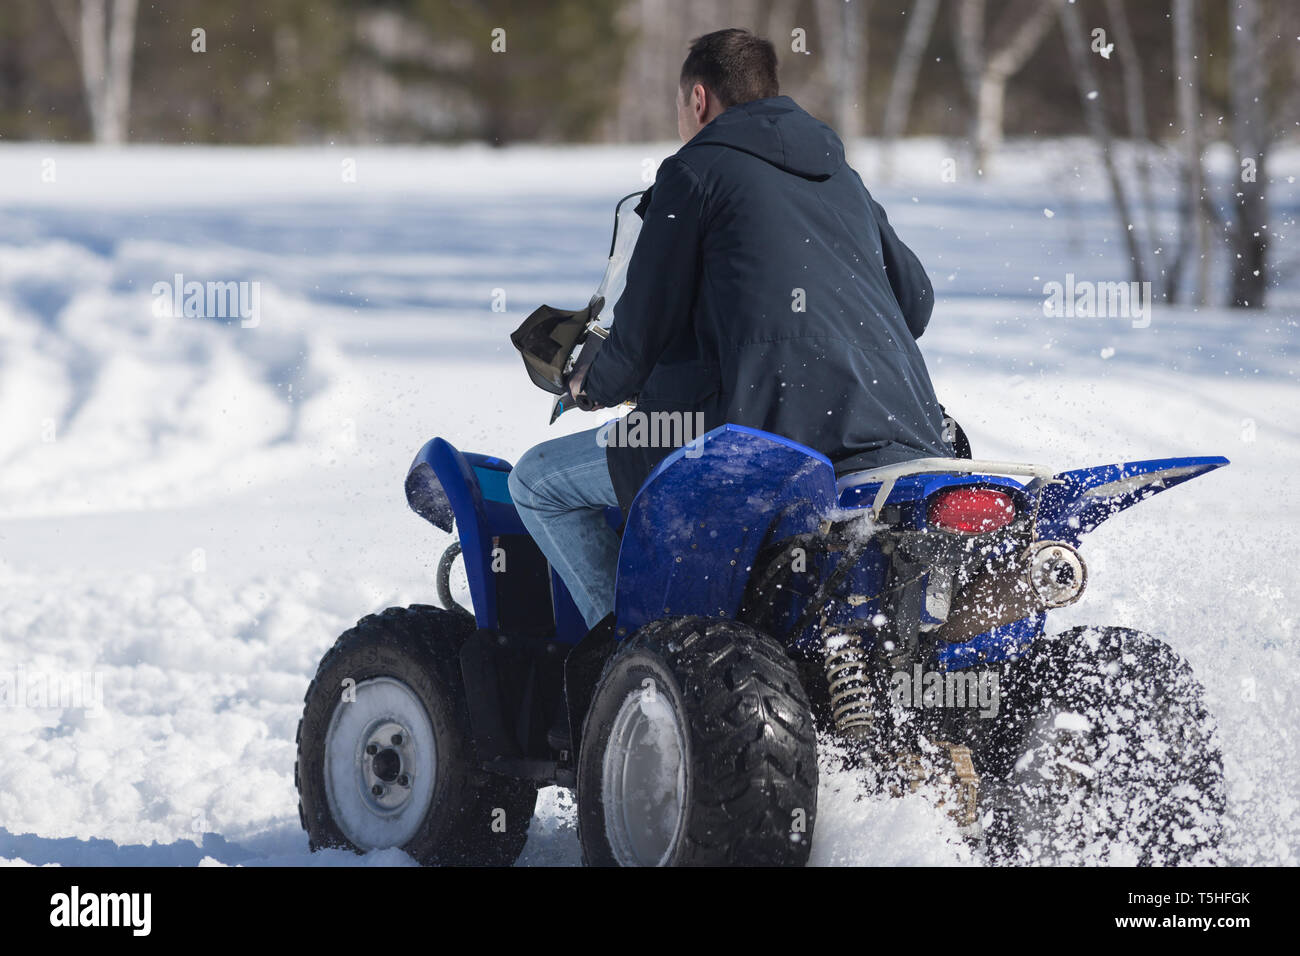 A winter forest in daylight. An adult man riding a big blue snowmobile. Back view Stock Photo